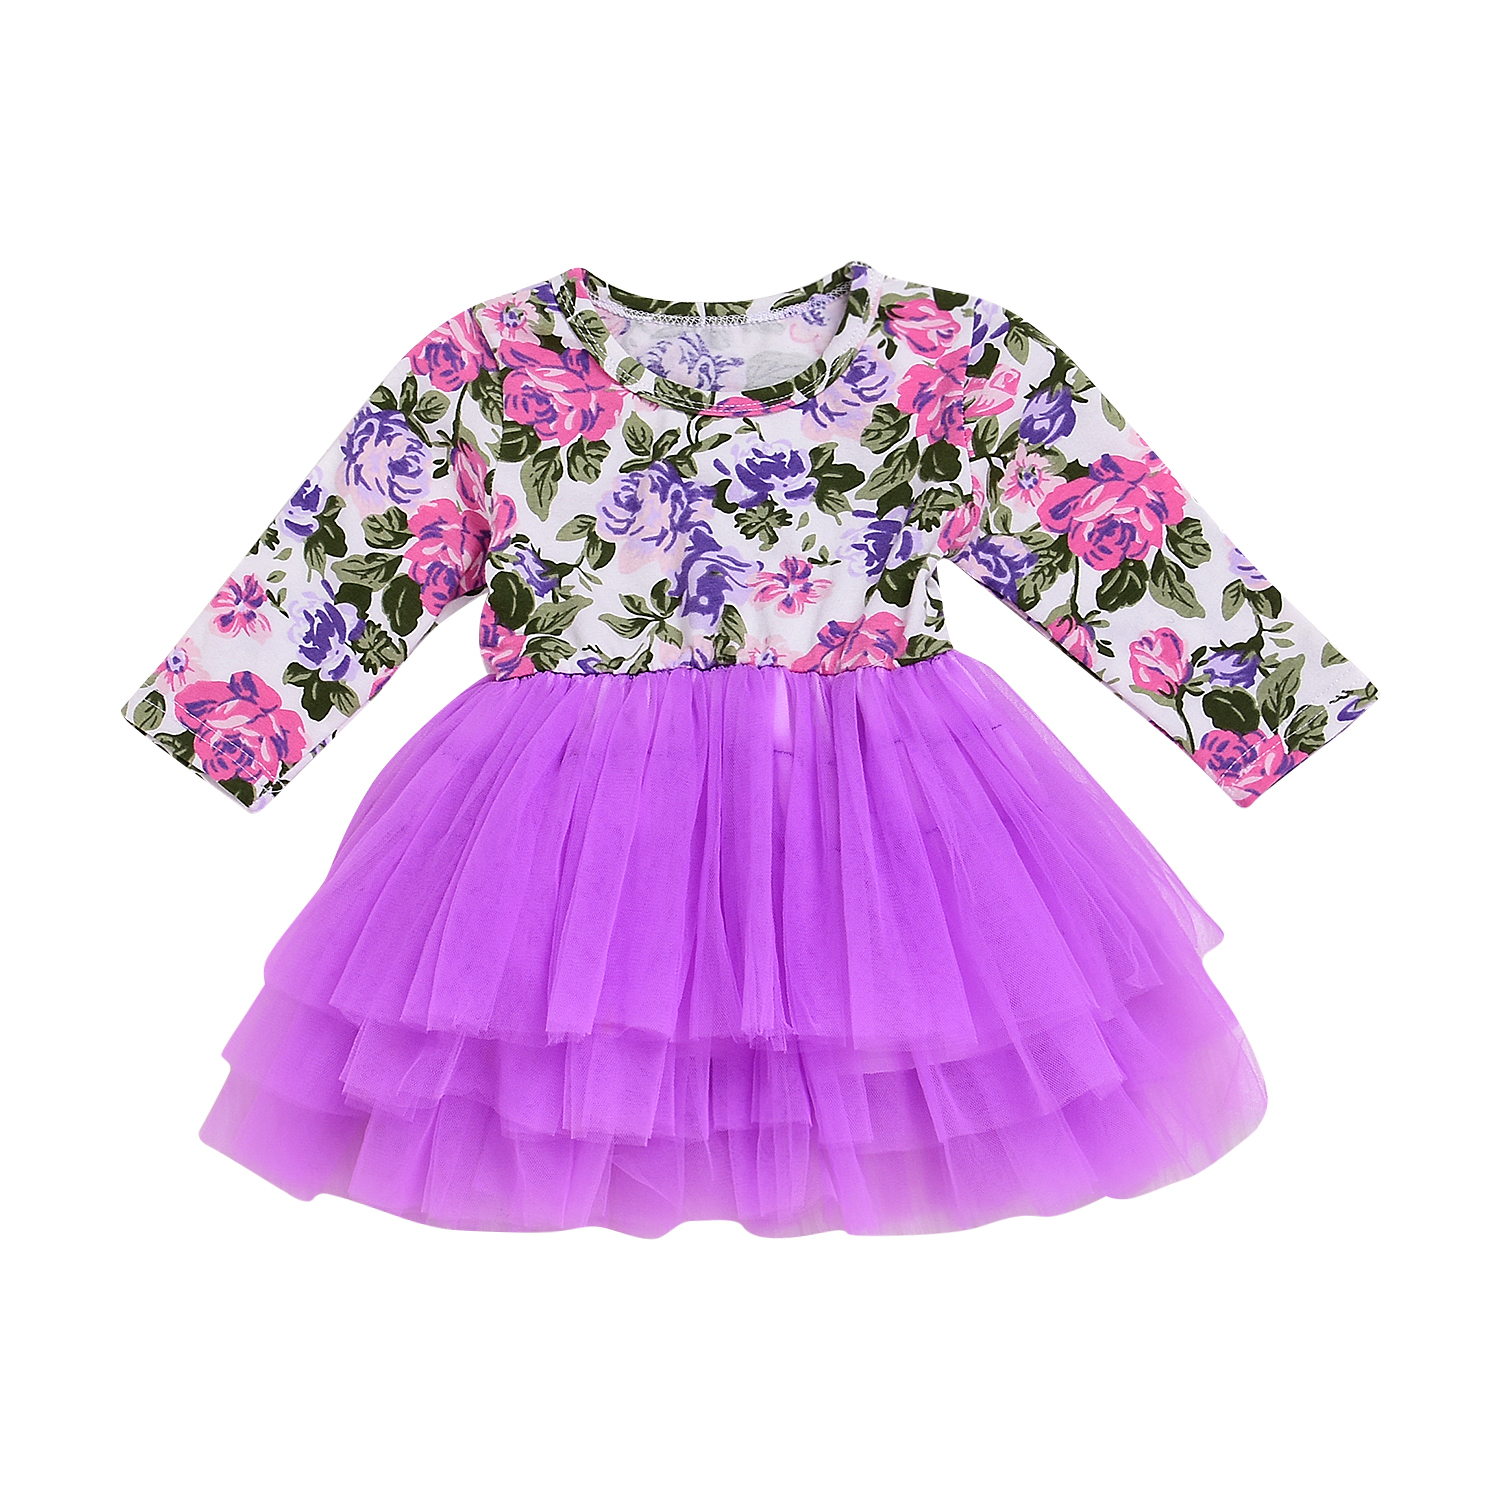 c321e61514aaf Newborn Baby Girl Long Sleeve Floral Party Princess Pageant Tulle ...